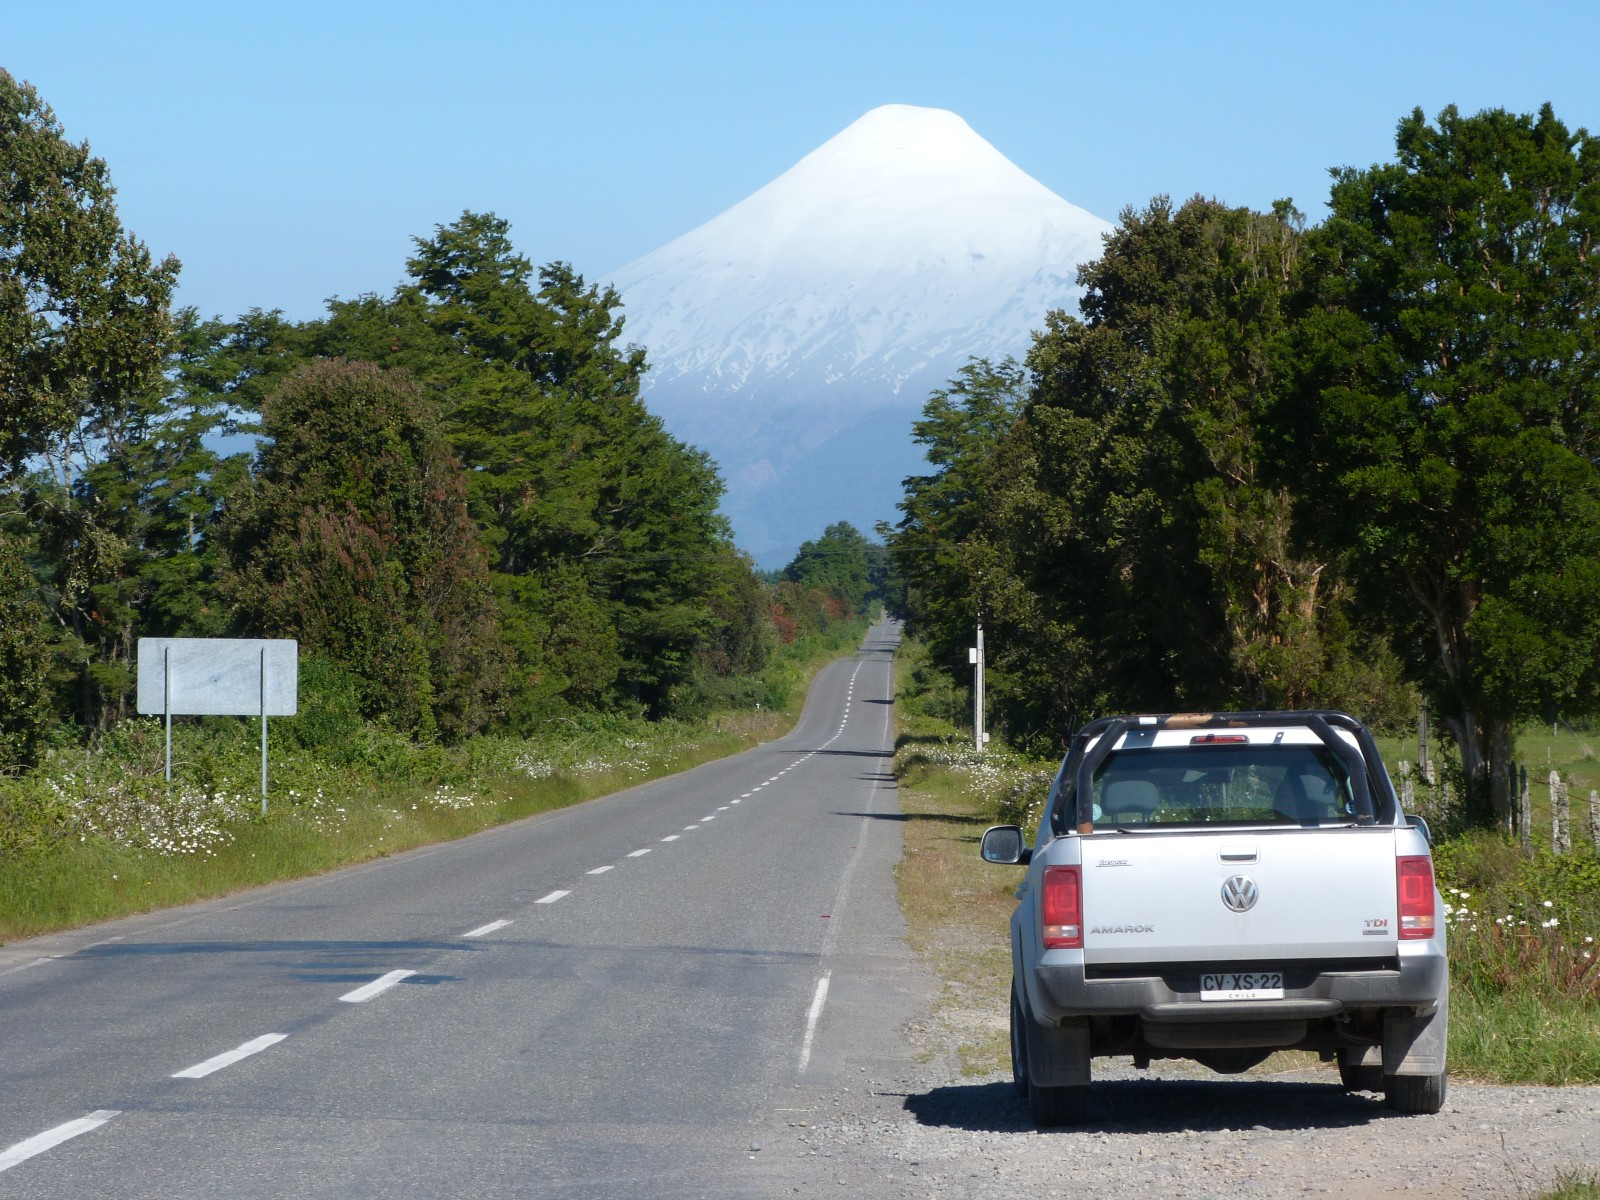 pux-chisd002-chile-puertovaras-free-dn